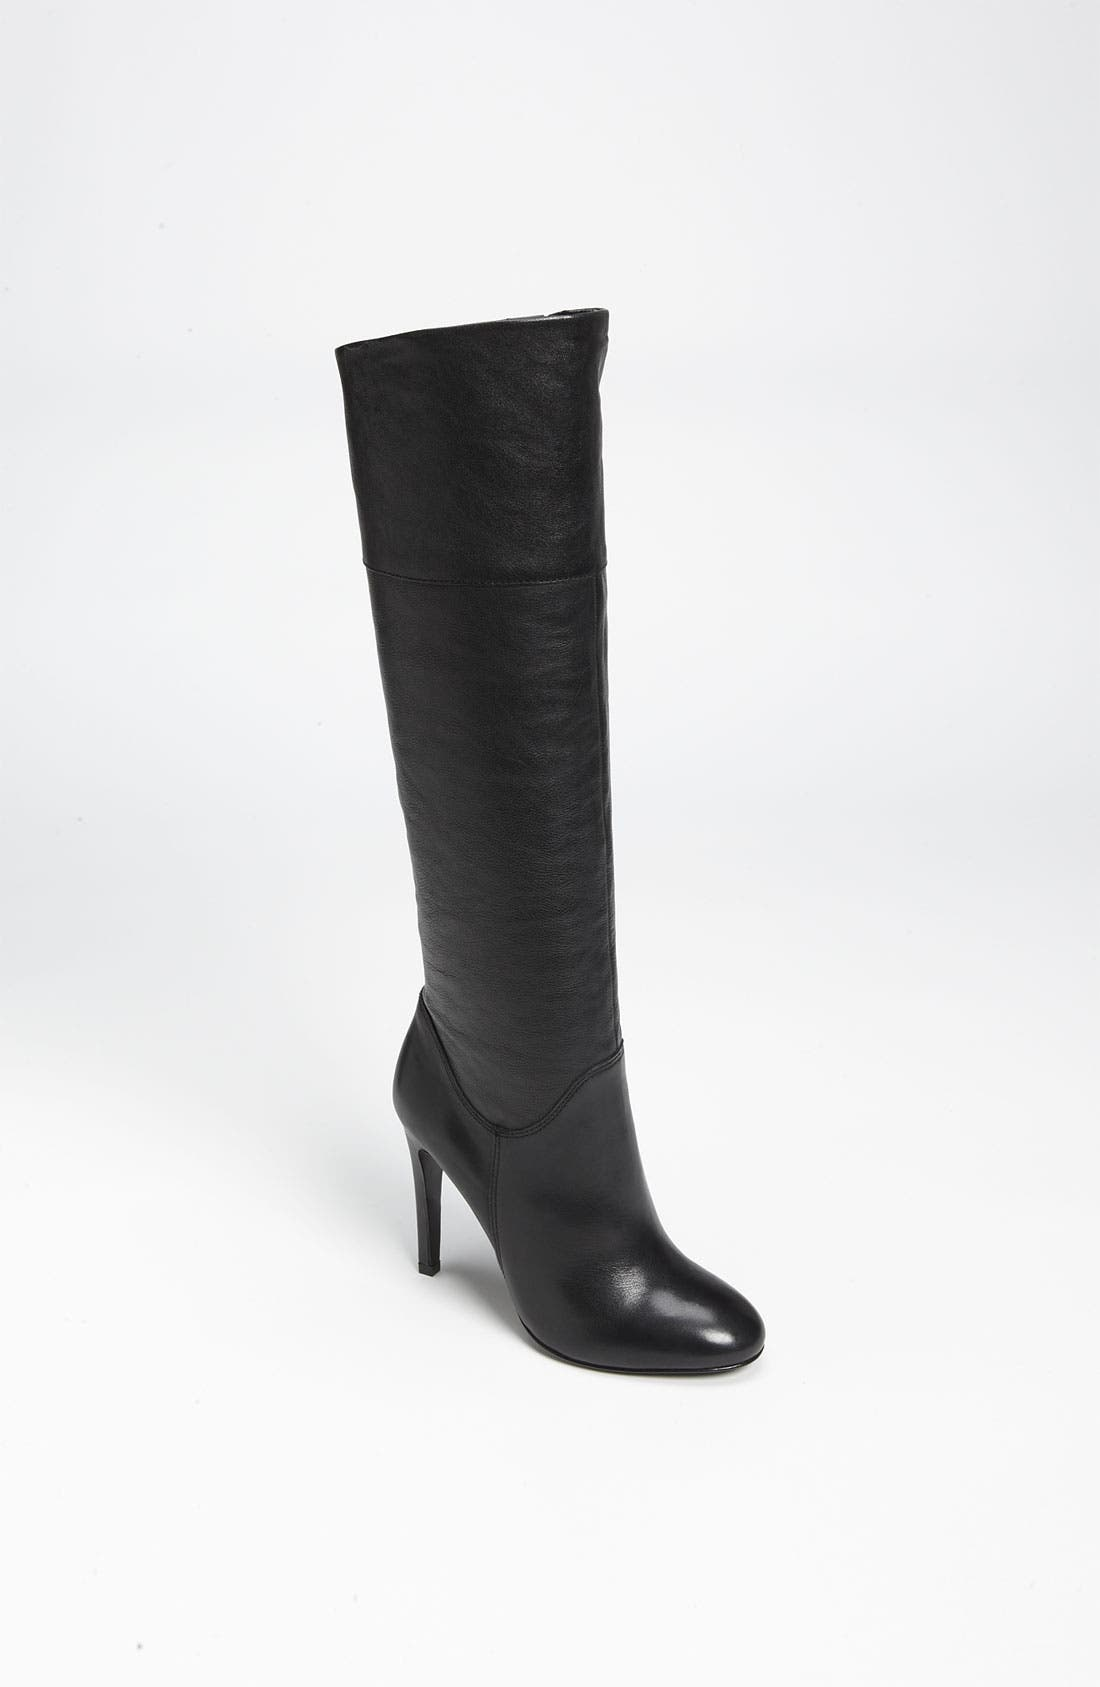 Alternate Image 1 Selected - 7 For All Mankind® 'Vignet' Boot (Online Exclusive)